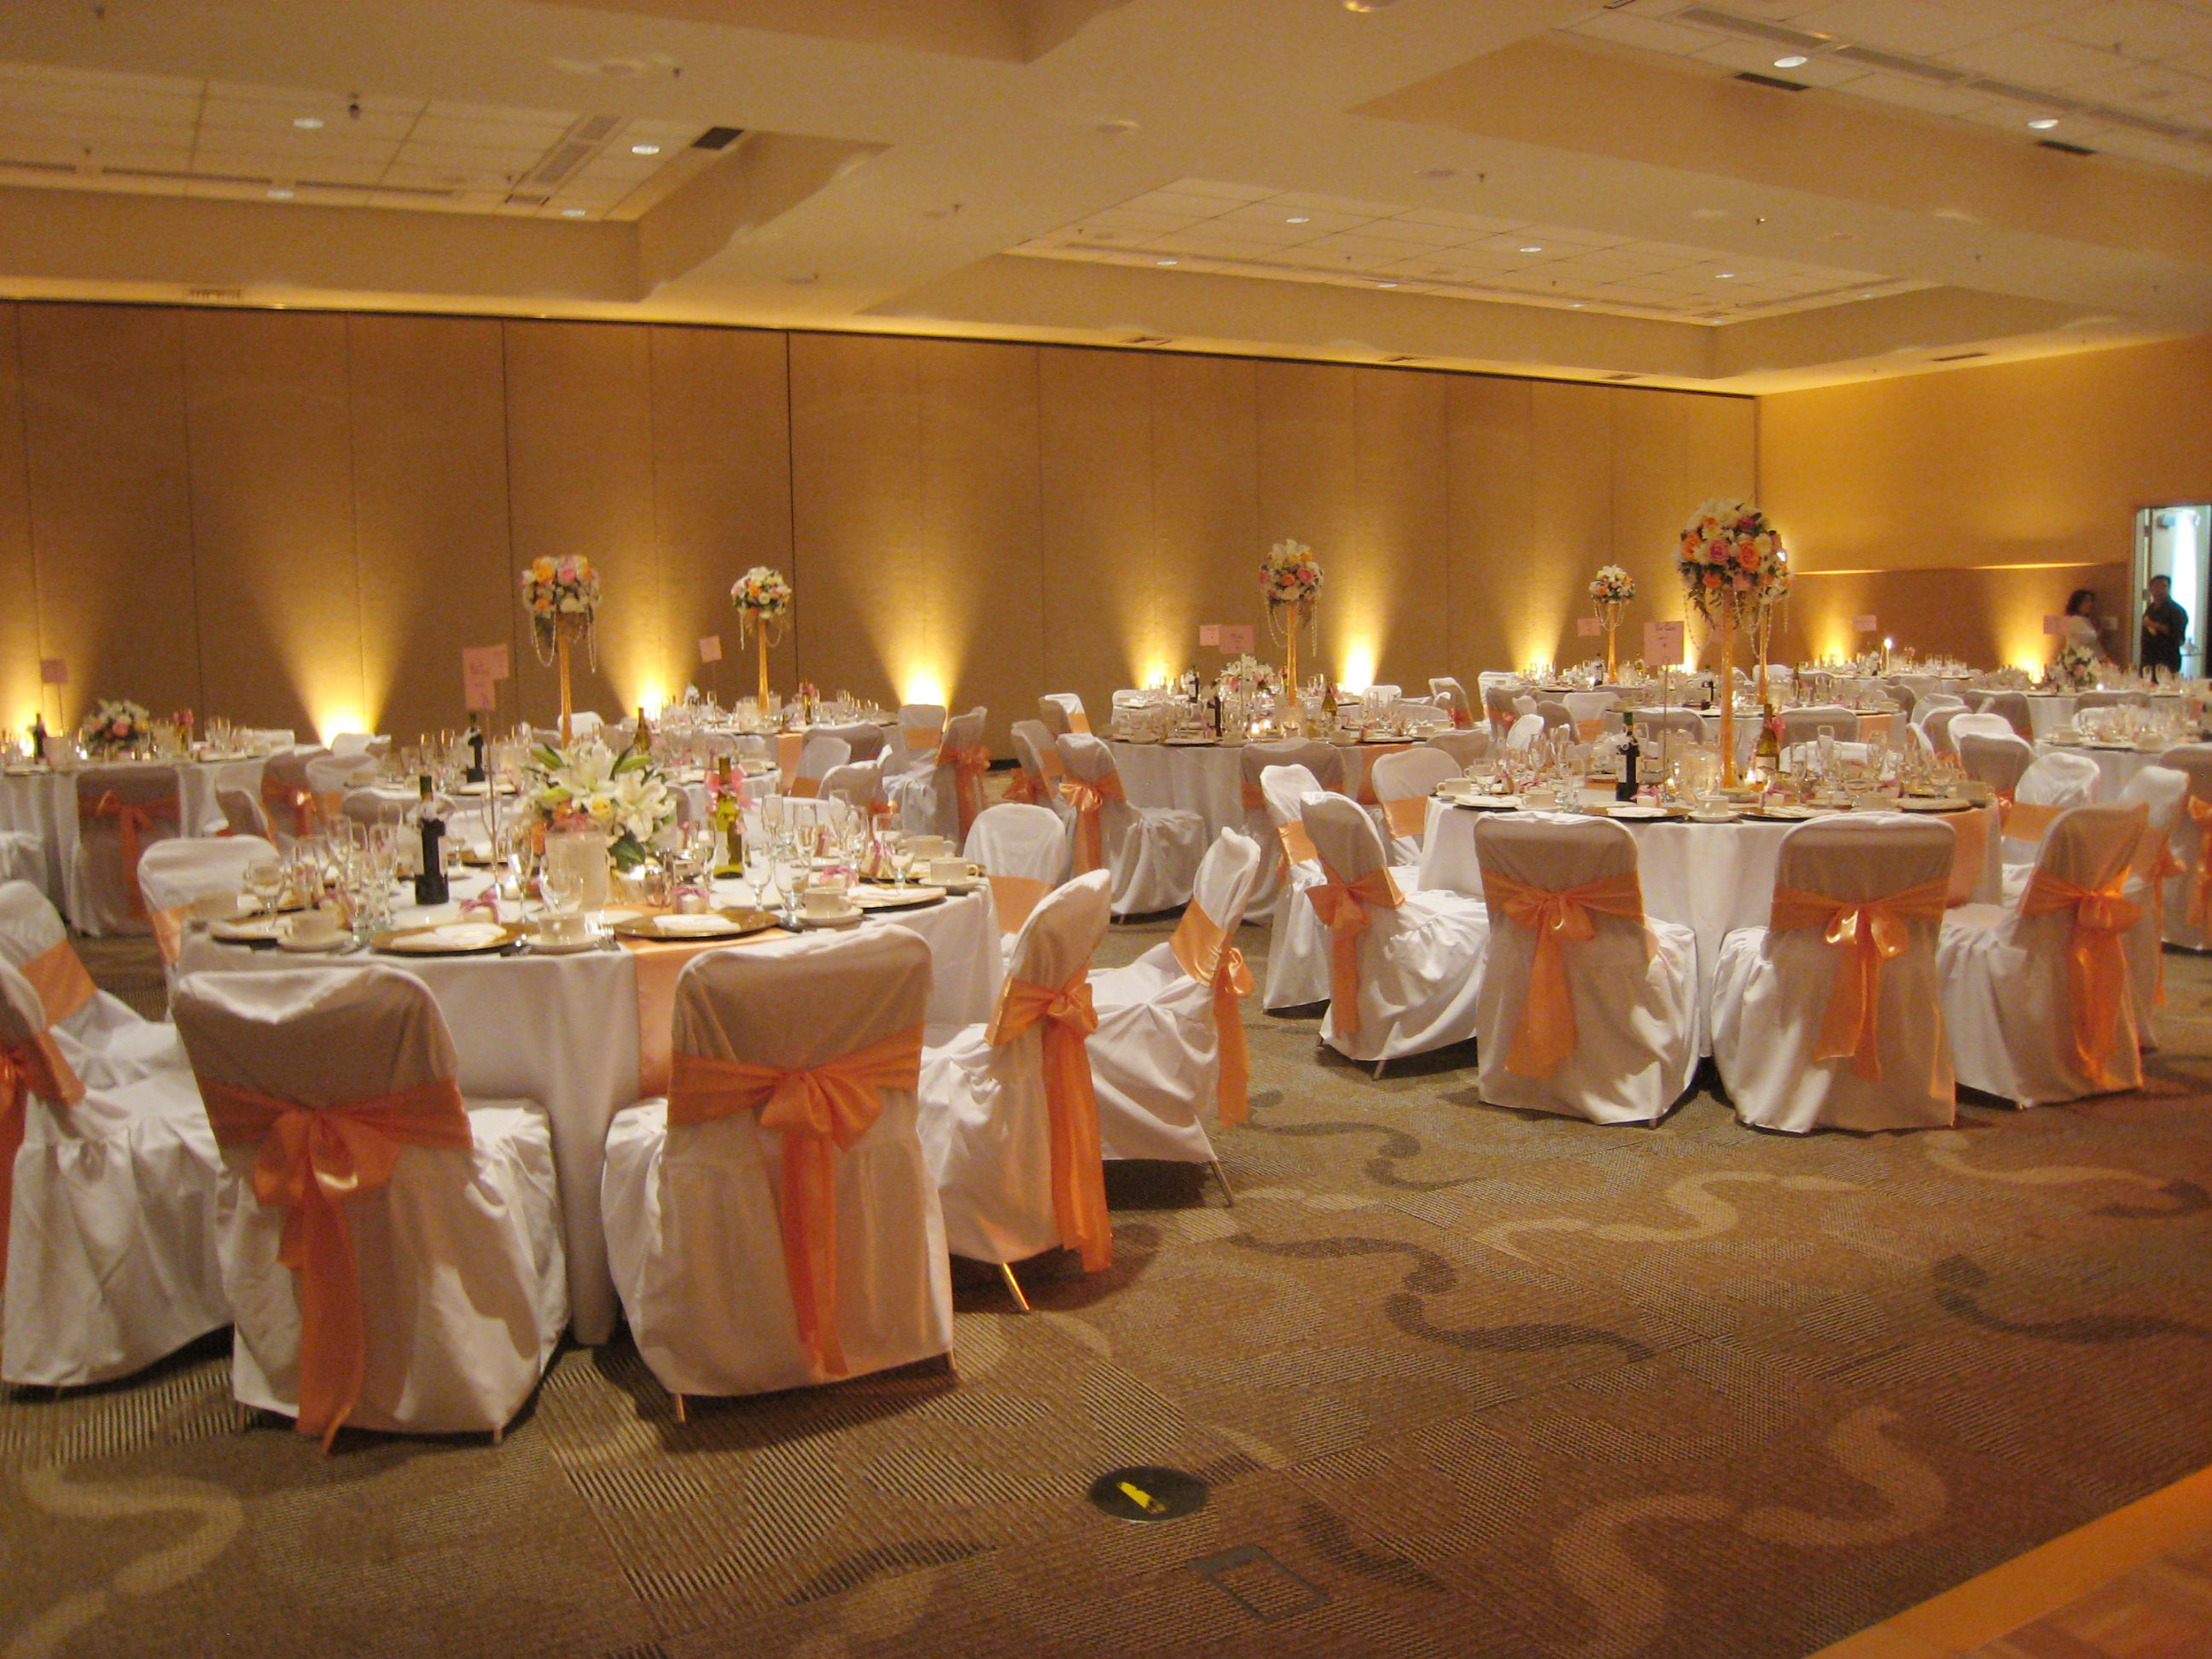 wedding rental chair cincinnati prime gallery time linen and pin tent dayton table accessories photo rentals oh party